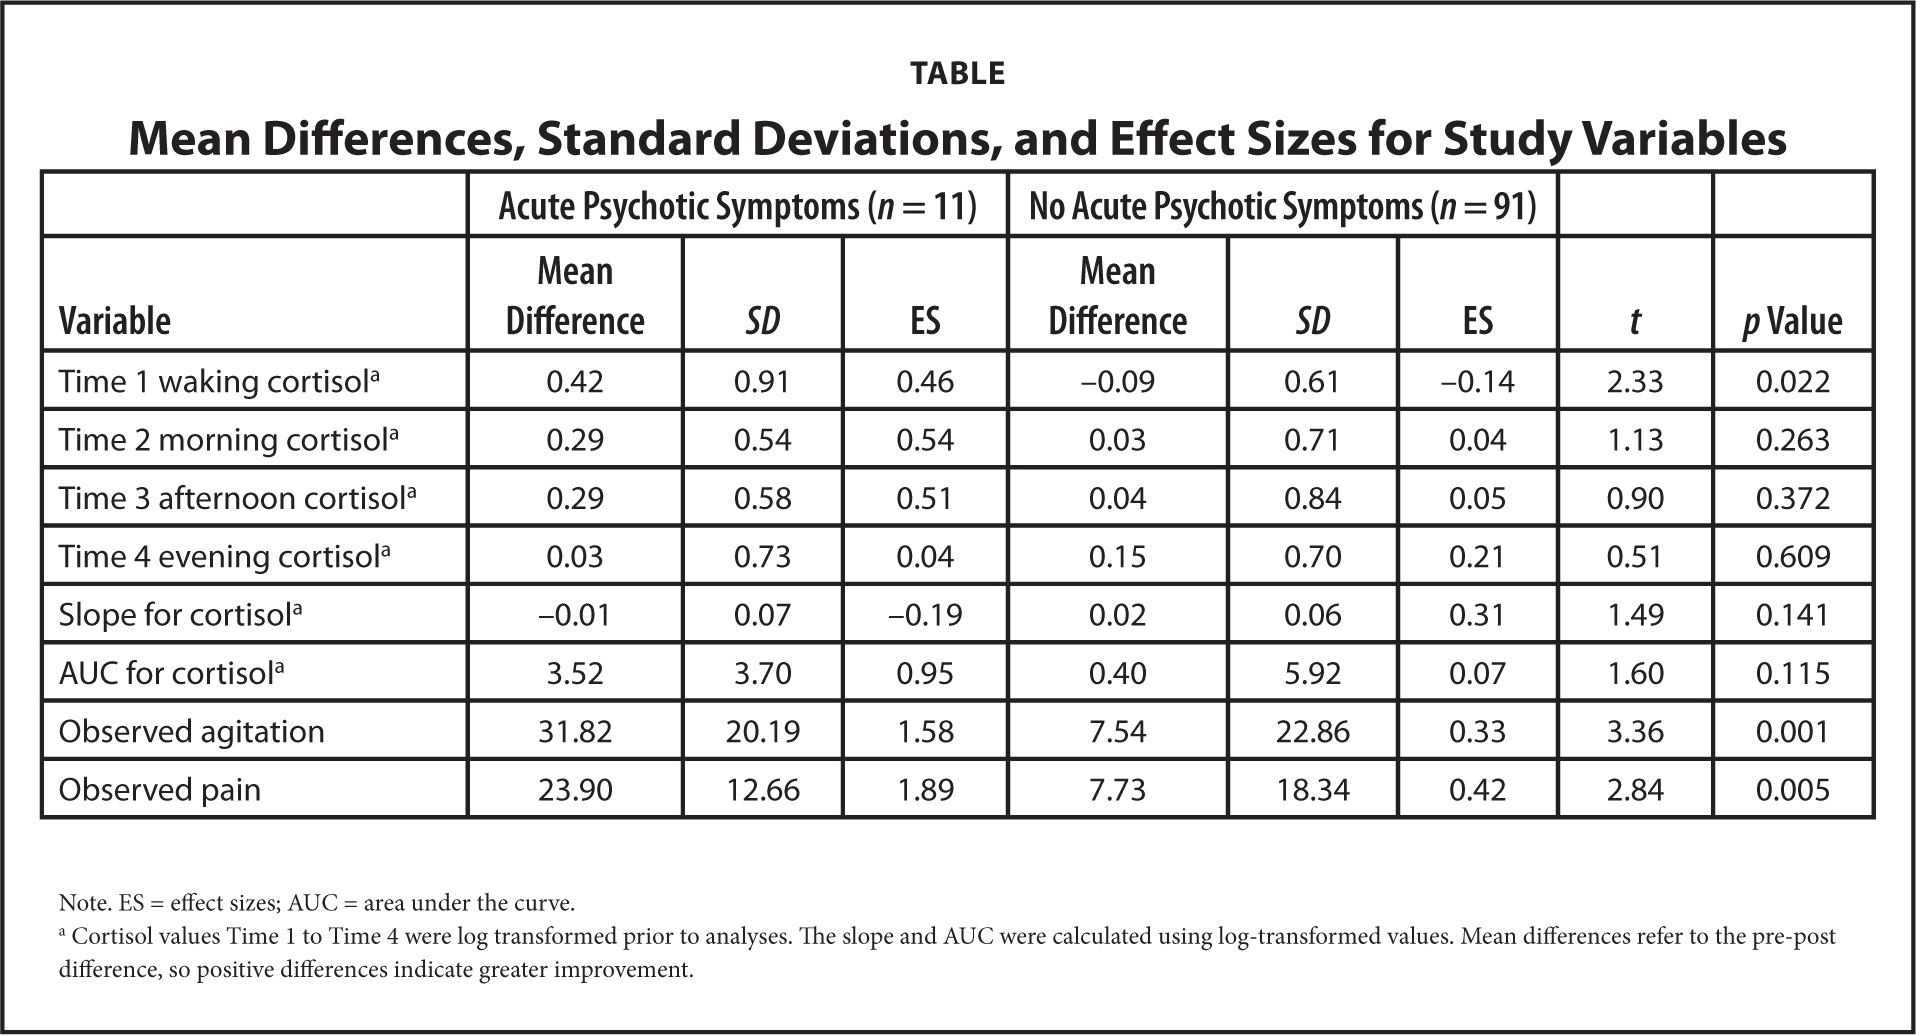 Mean Differences, Standard Deviations, and Effect Sizes for Study Variables